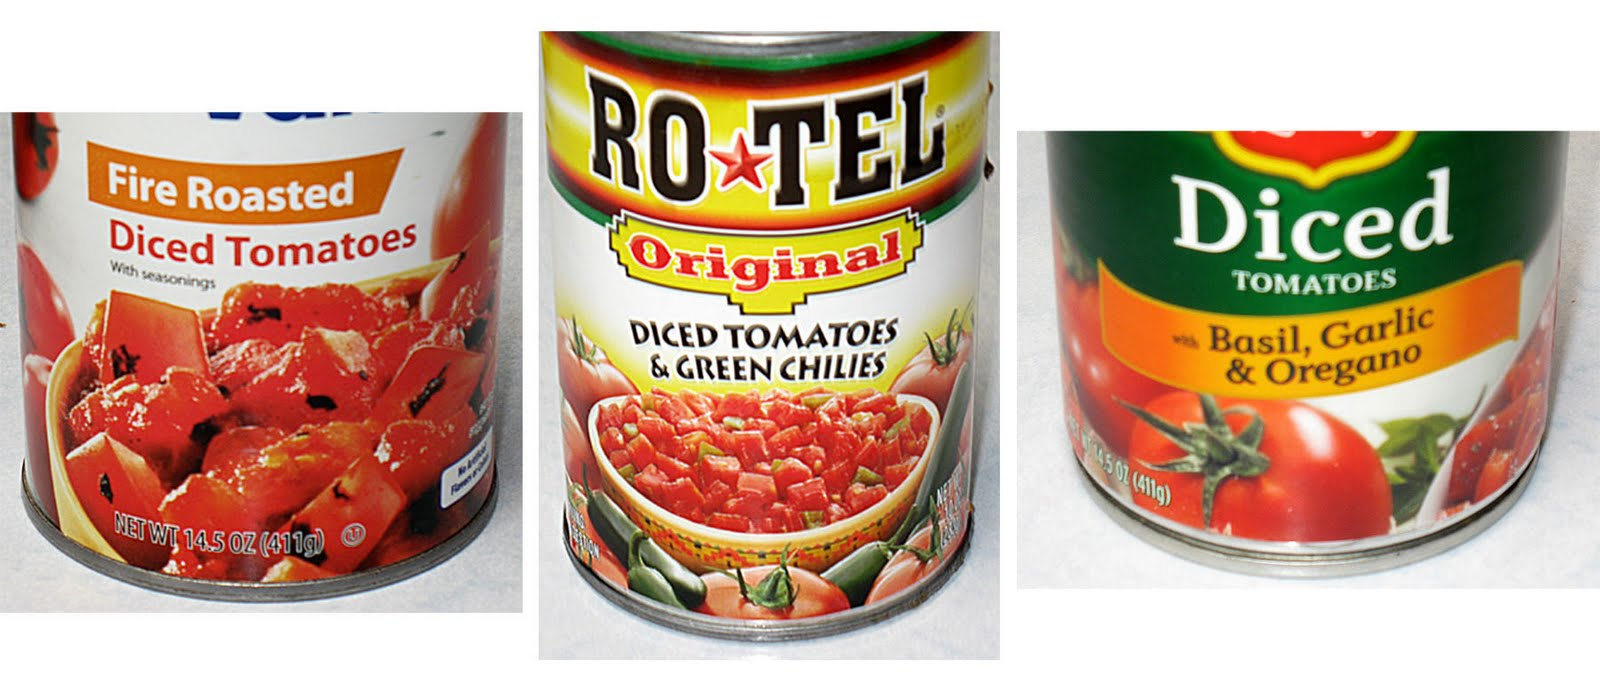 Pour all 3 cans of tomatoes into a blender.